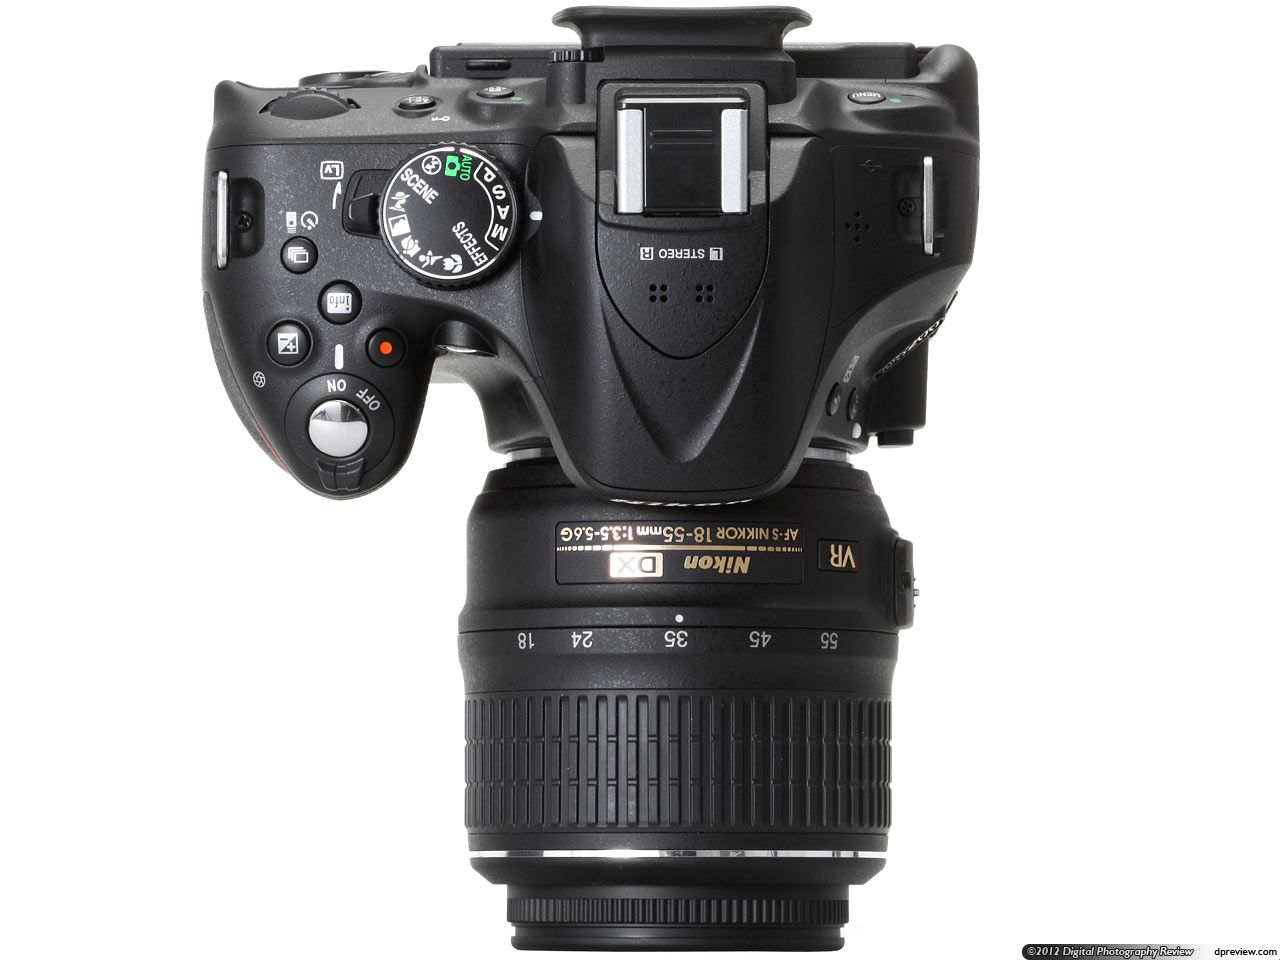 Nikon D5200 Hands-on Preview: Digital Photography Review